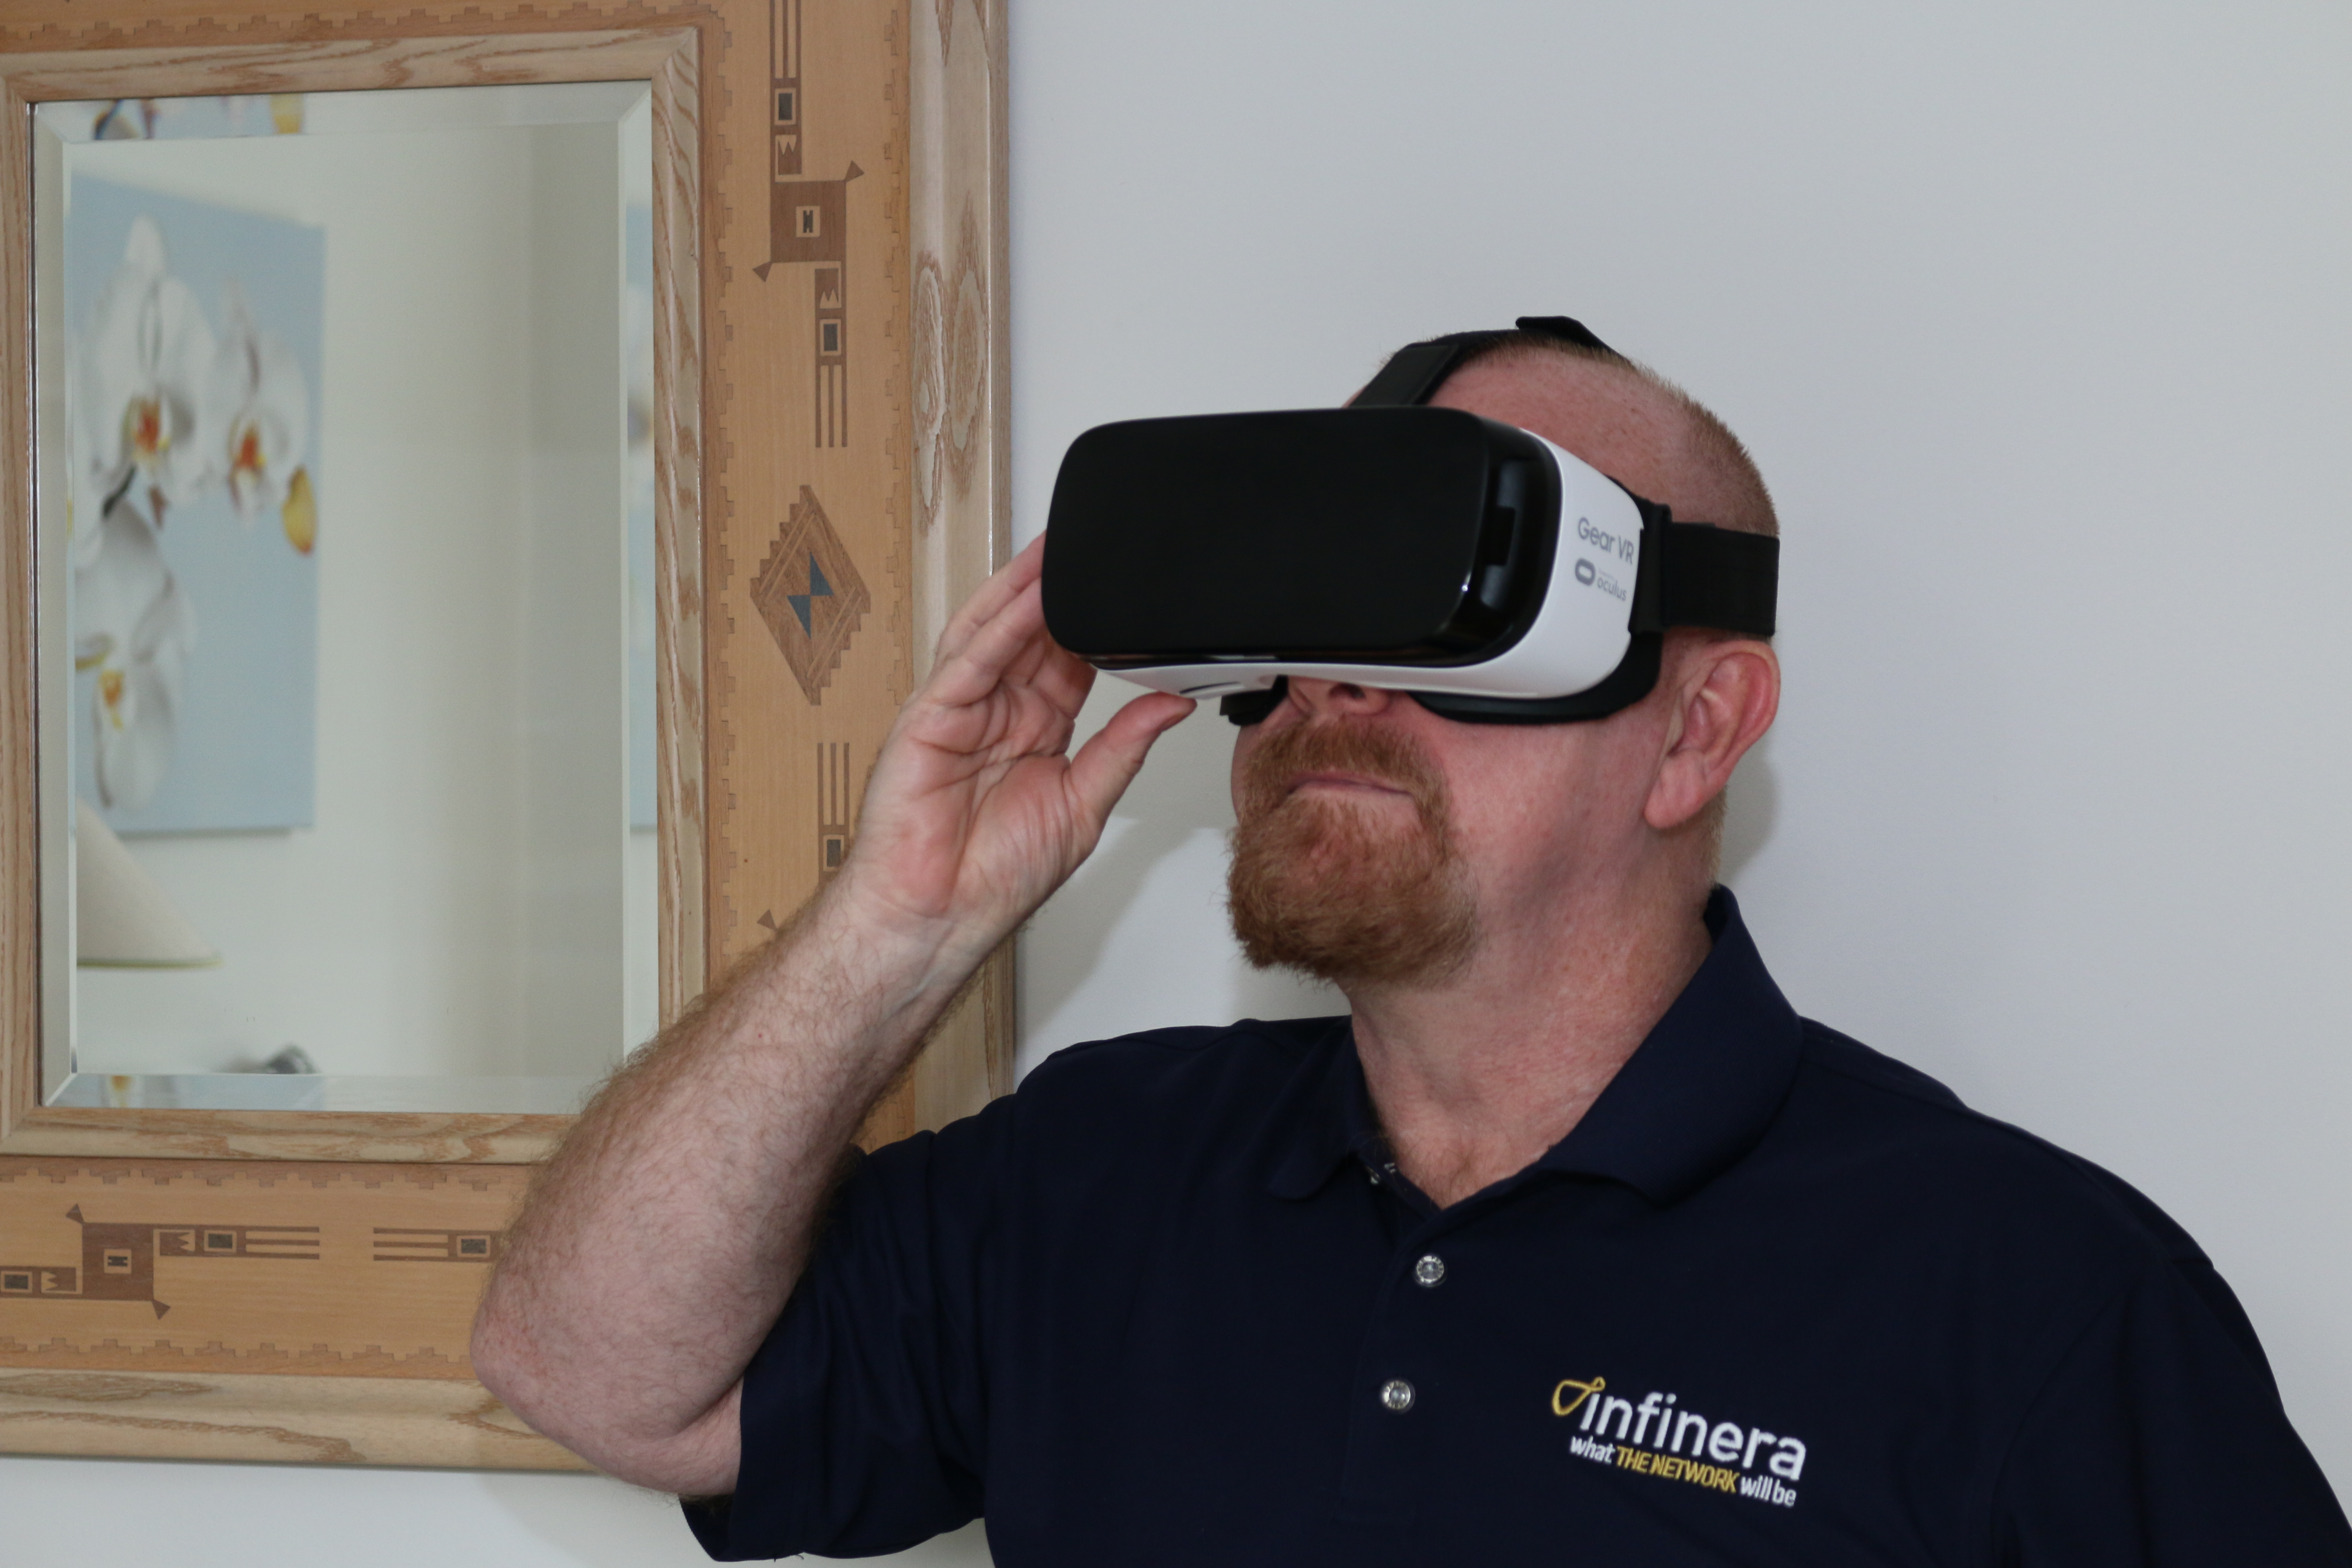 Geoff Bennet in VR Headset